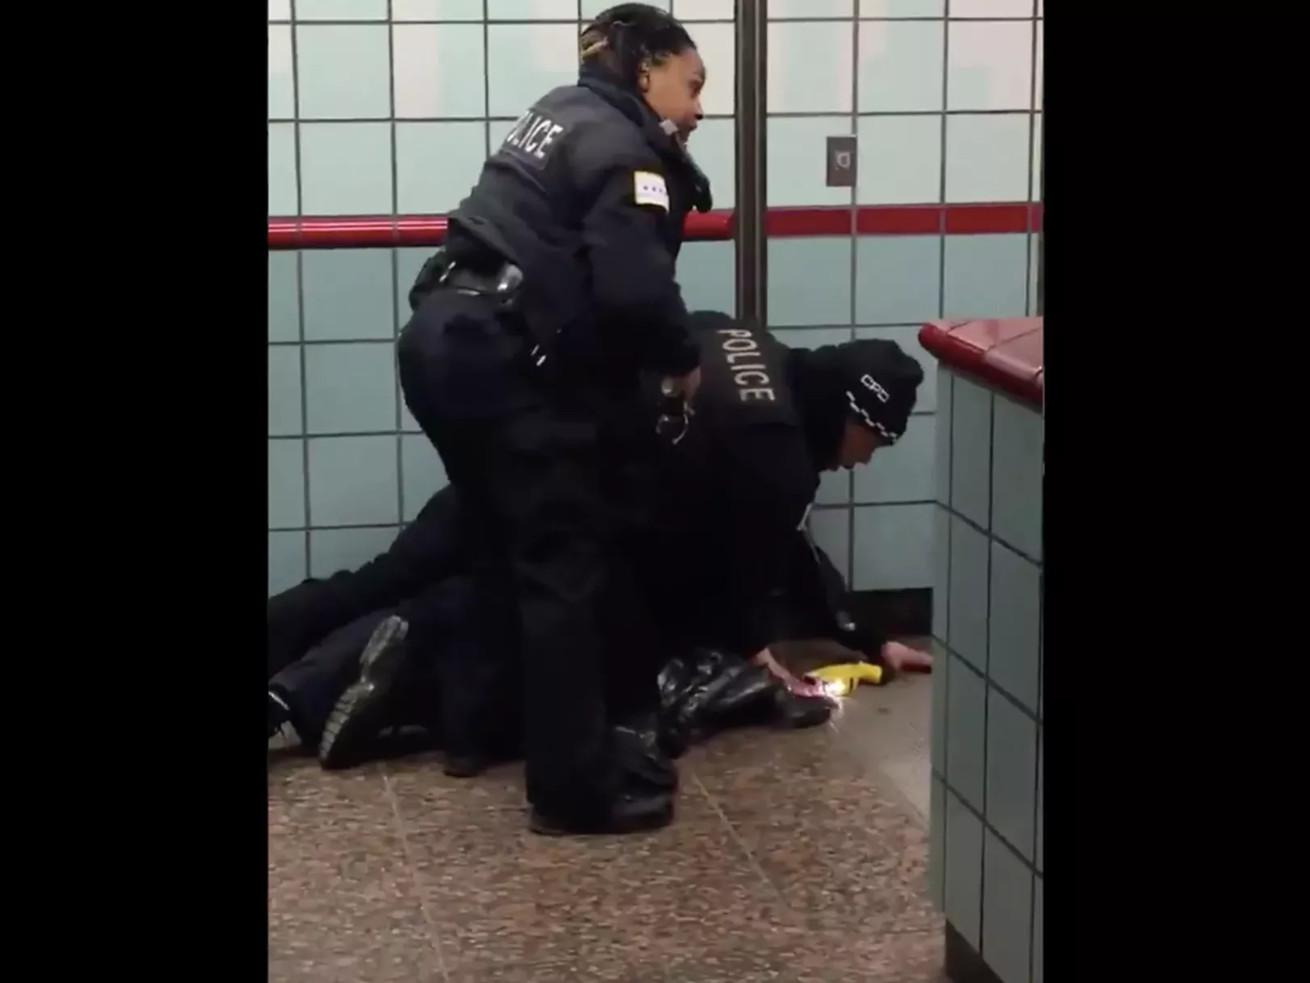 Man who recorded CPD shooting on Red Line: 'I just wanted to get it out'